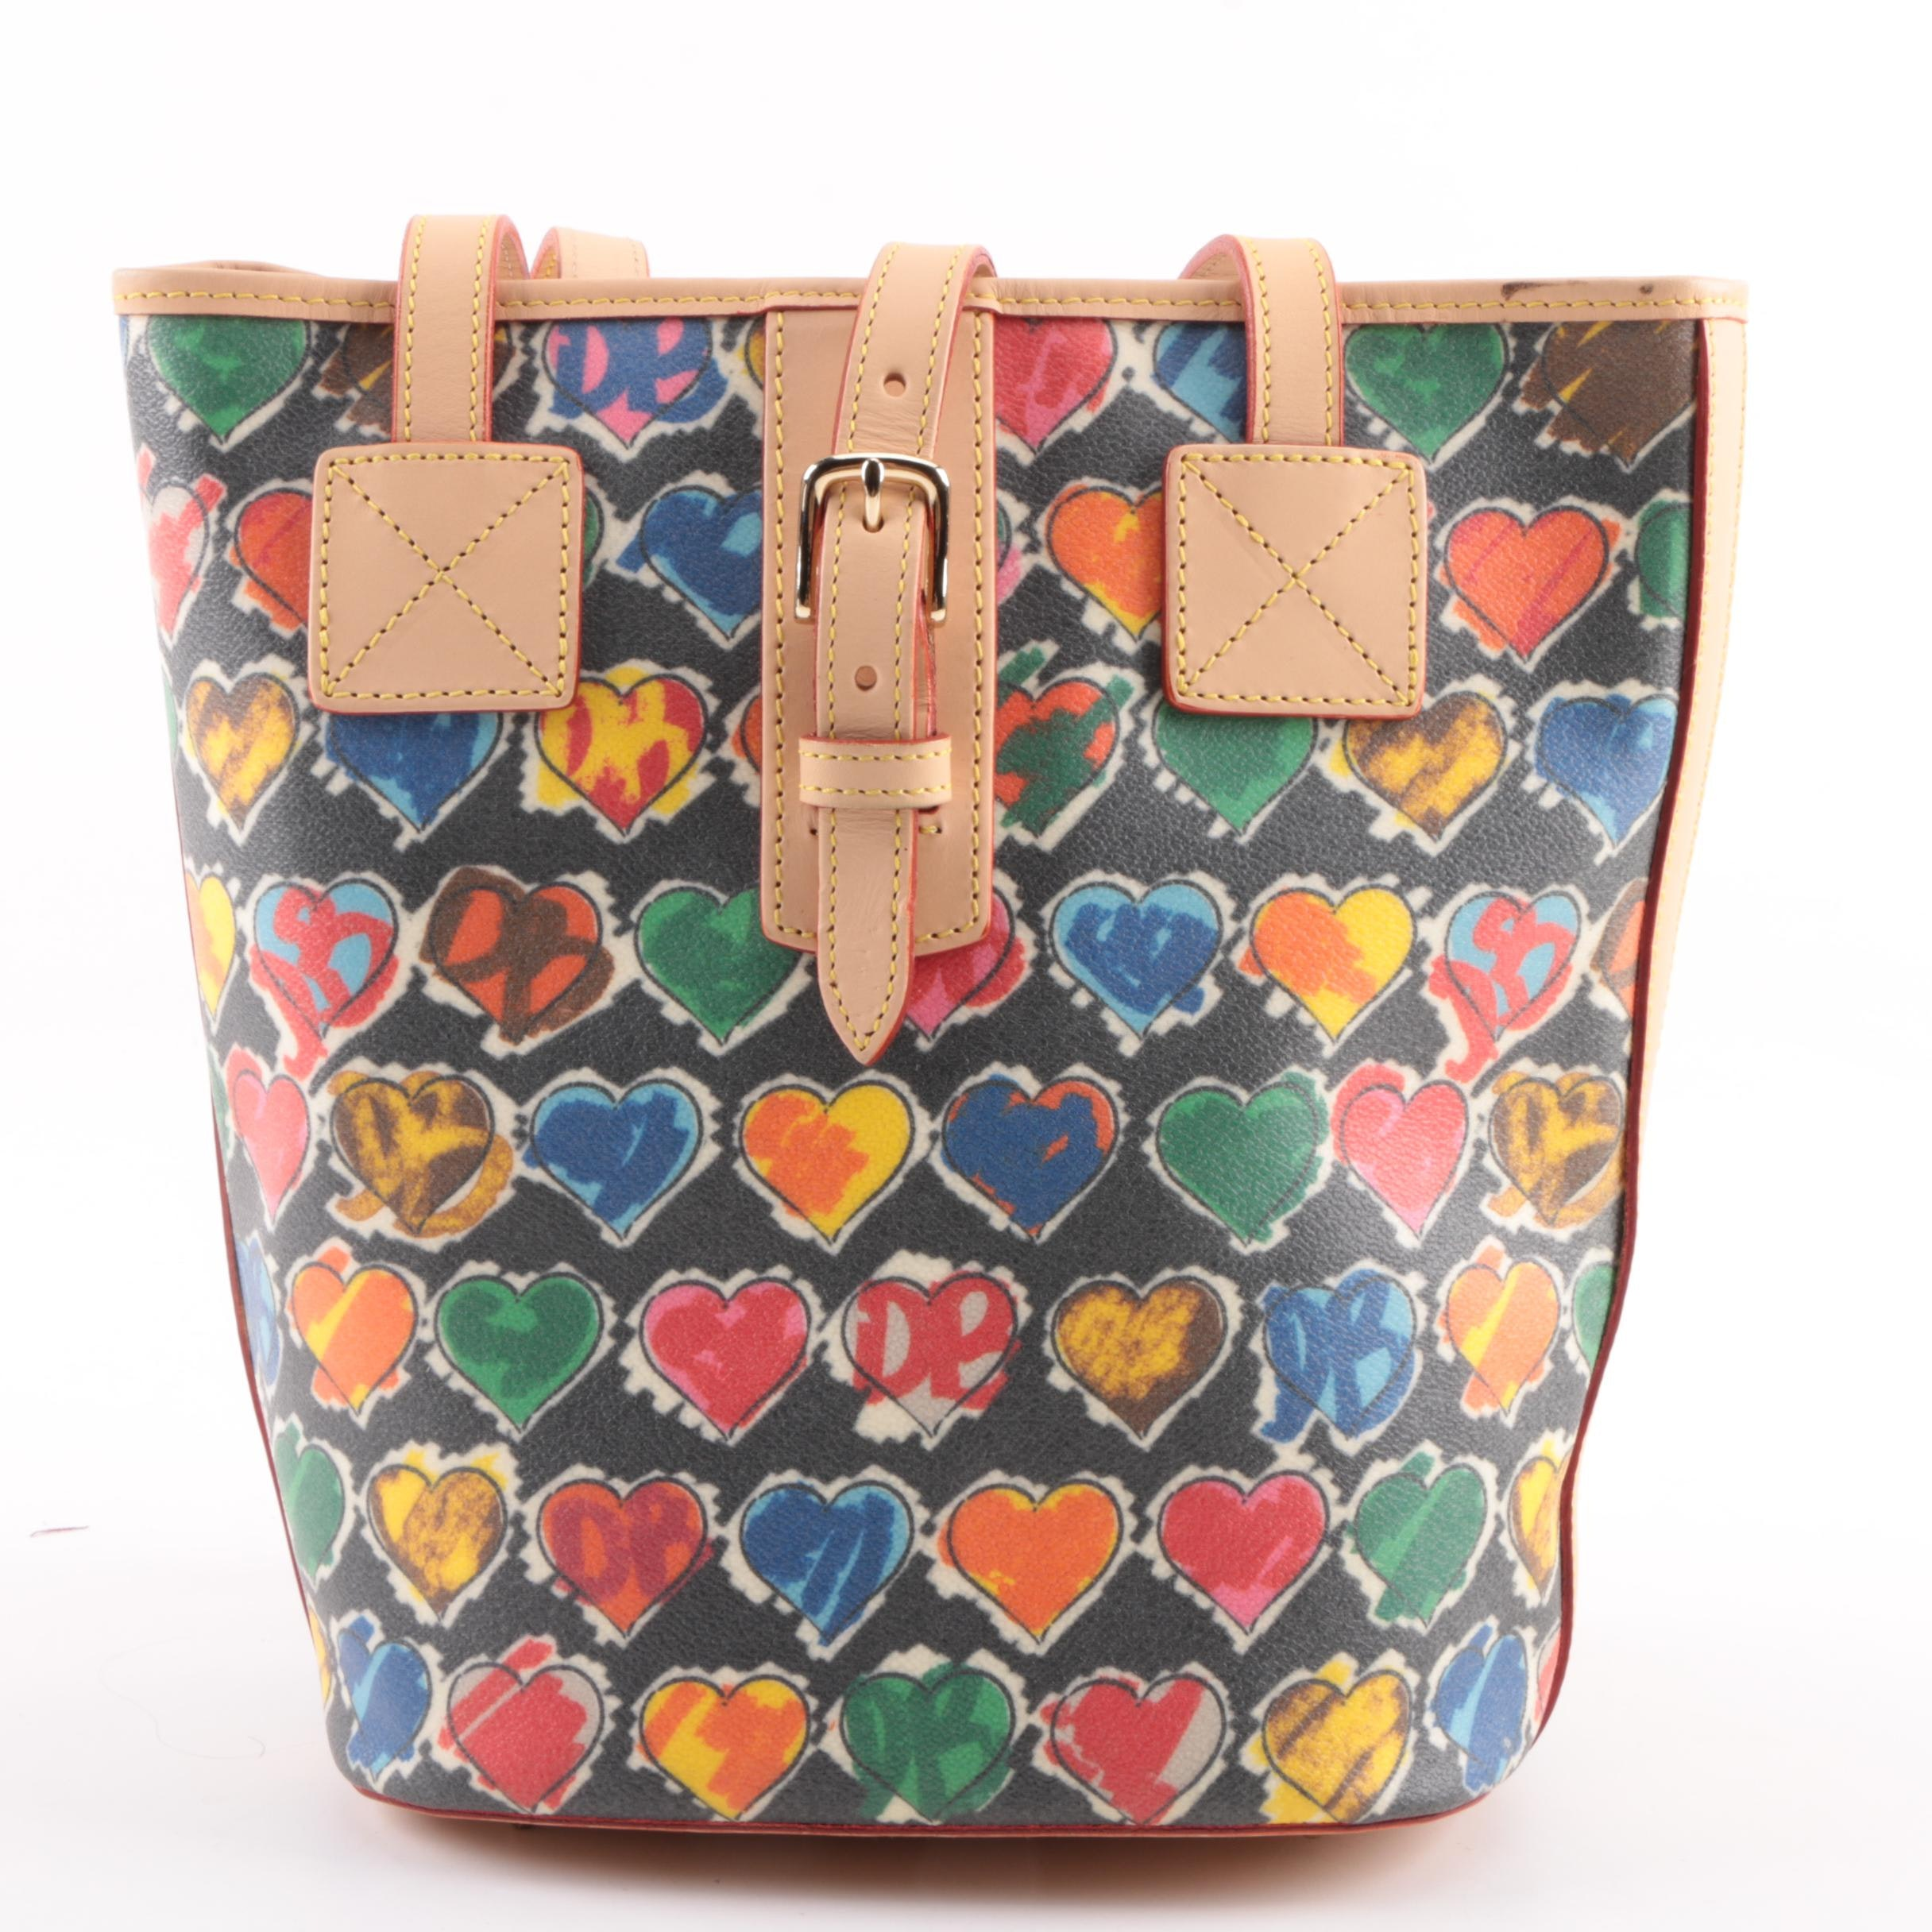 Dooney & Bourke Signature Heart Coated Canvas and Leather Bucket Bag